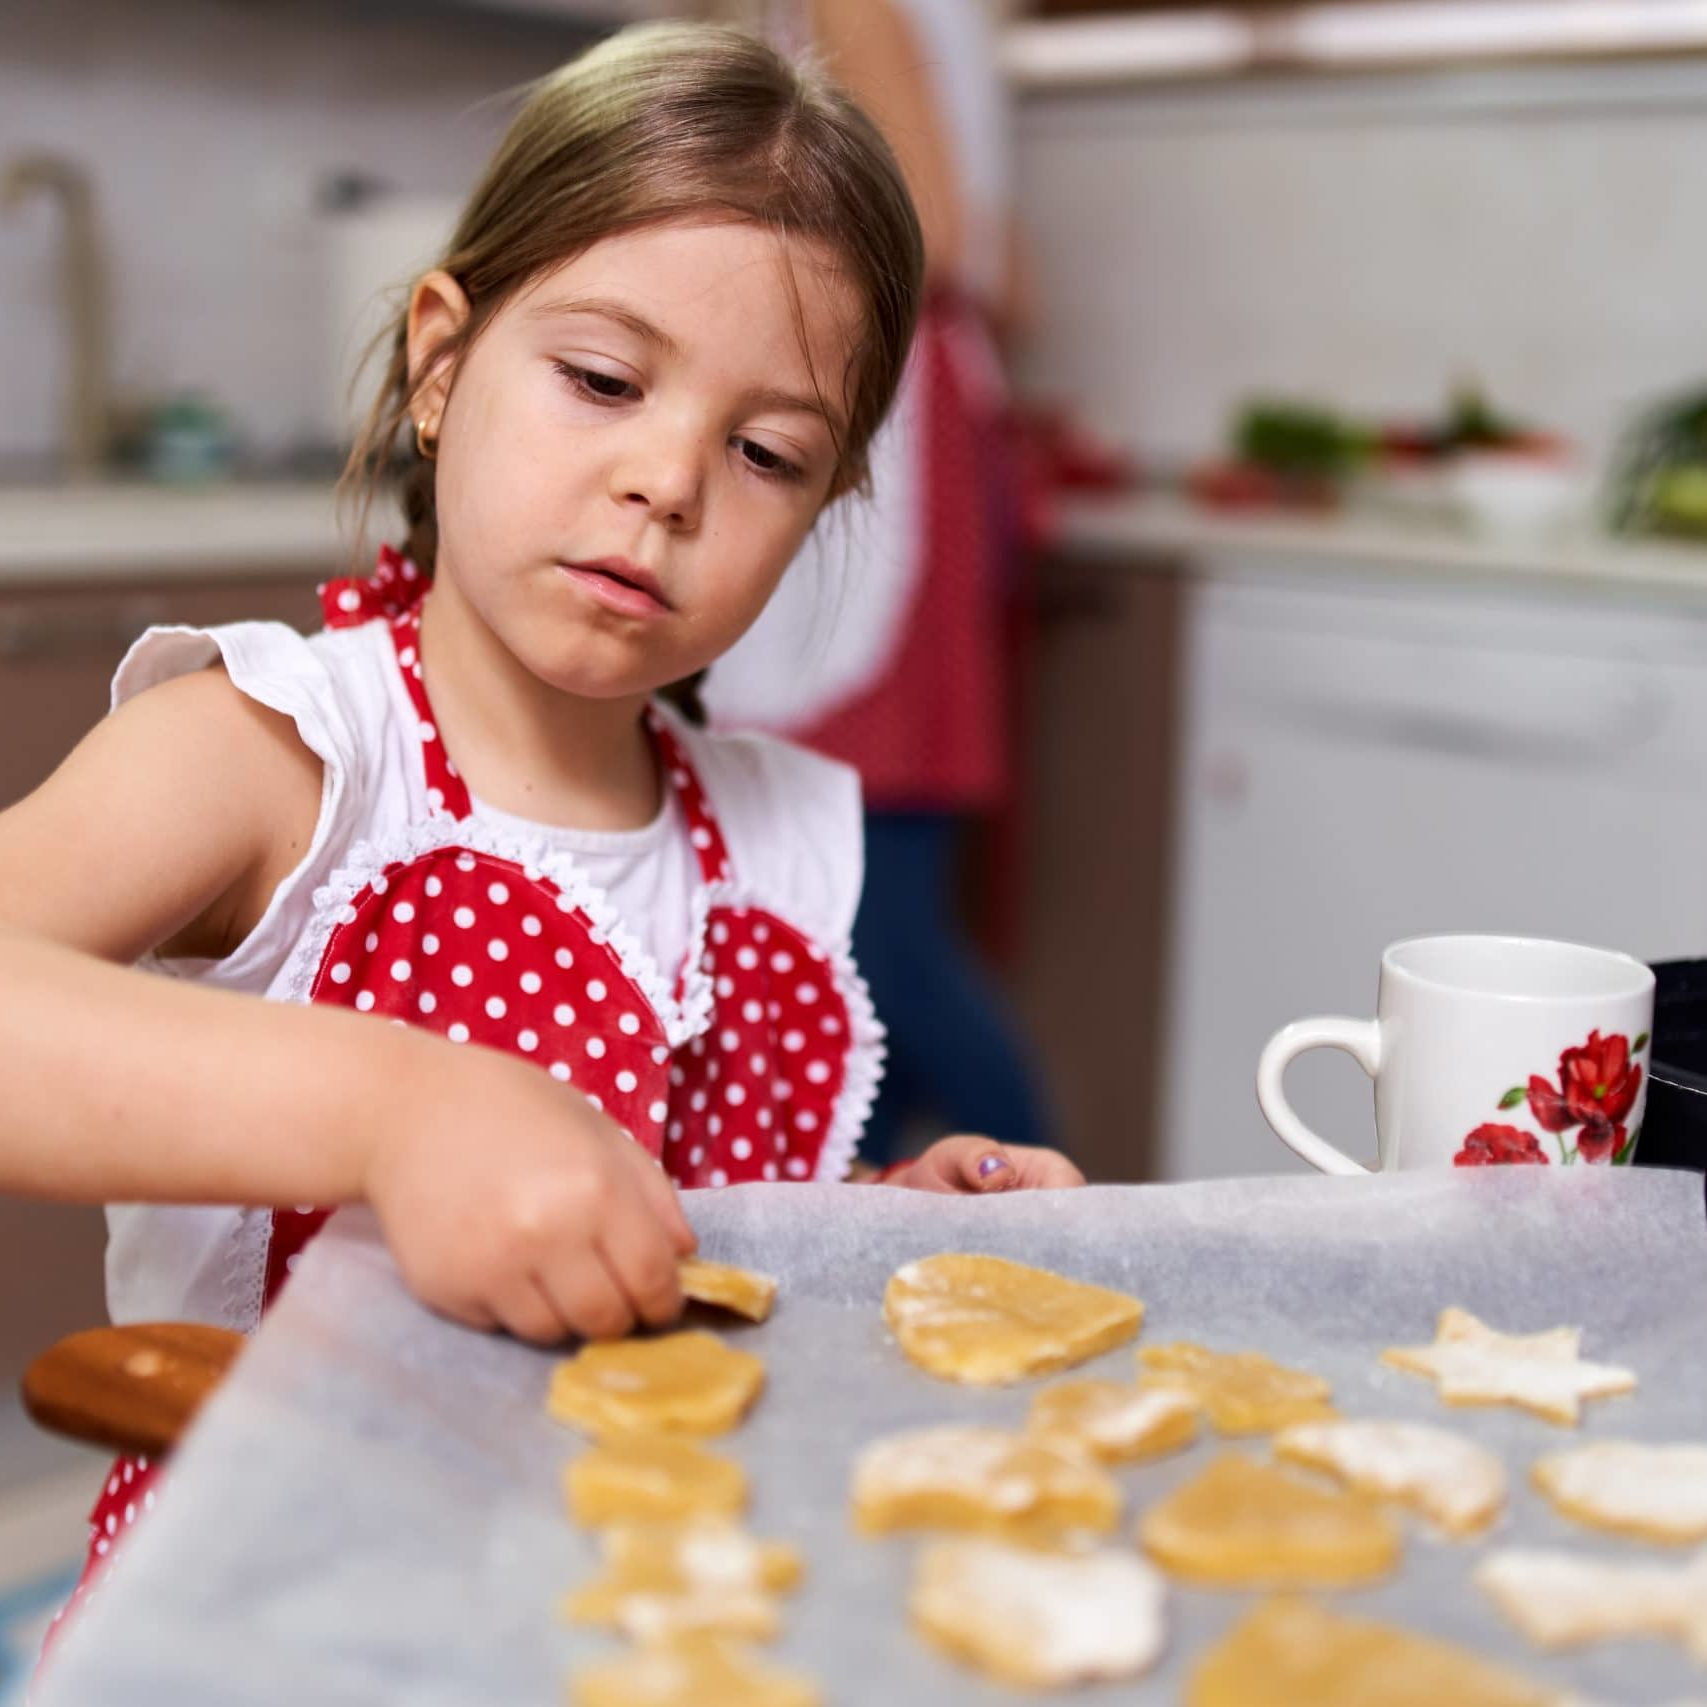 Young,Girl,Making,Gingerbread,Cookies,At,Home